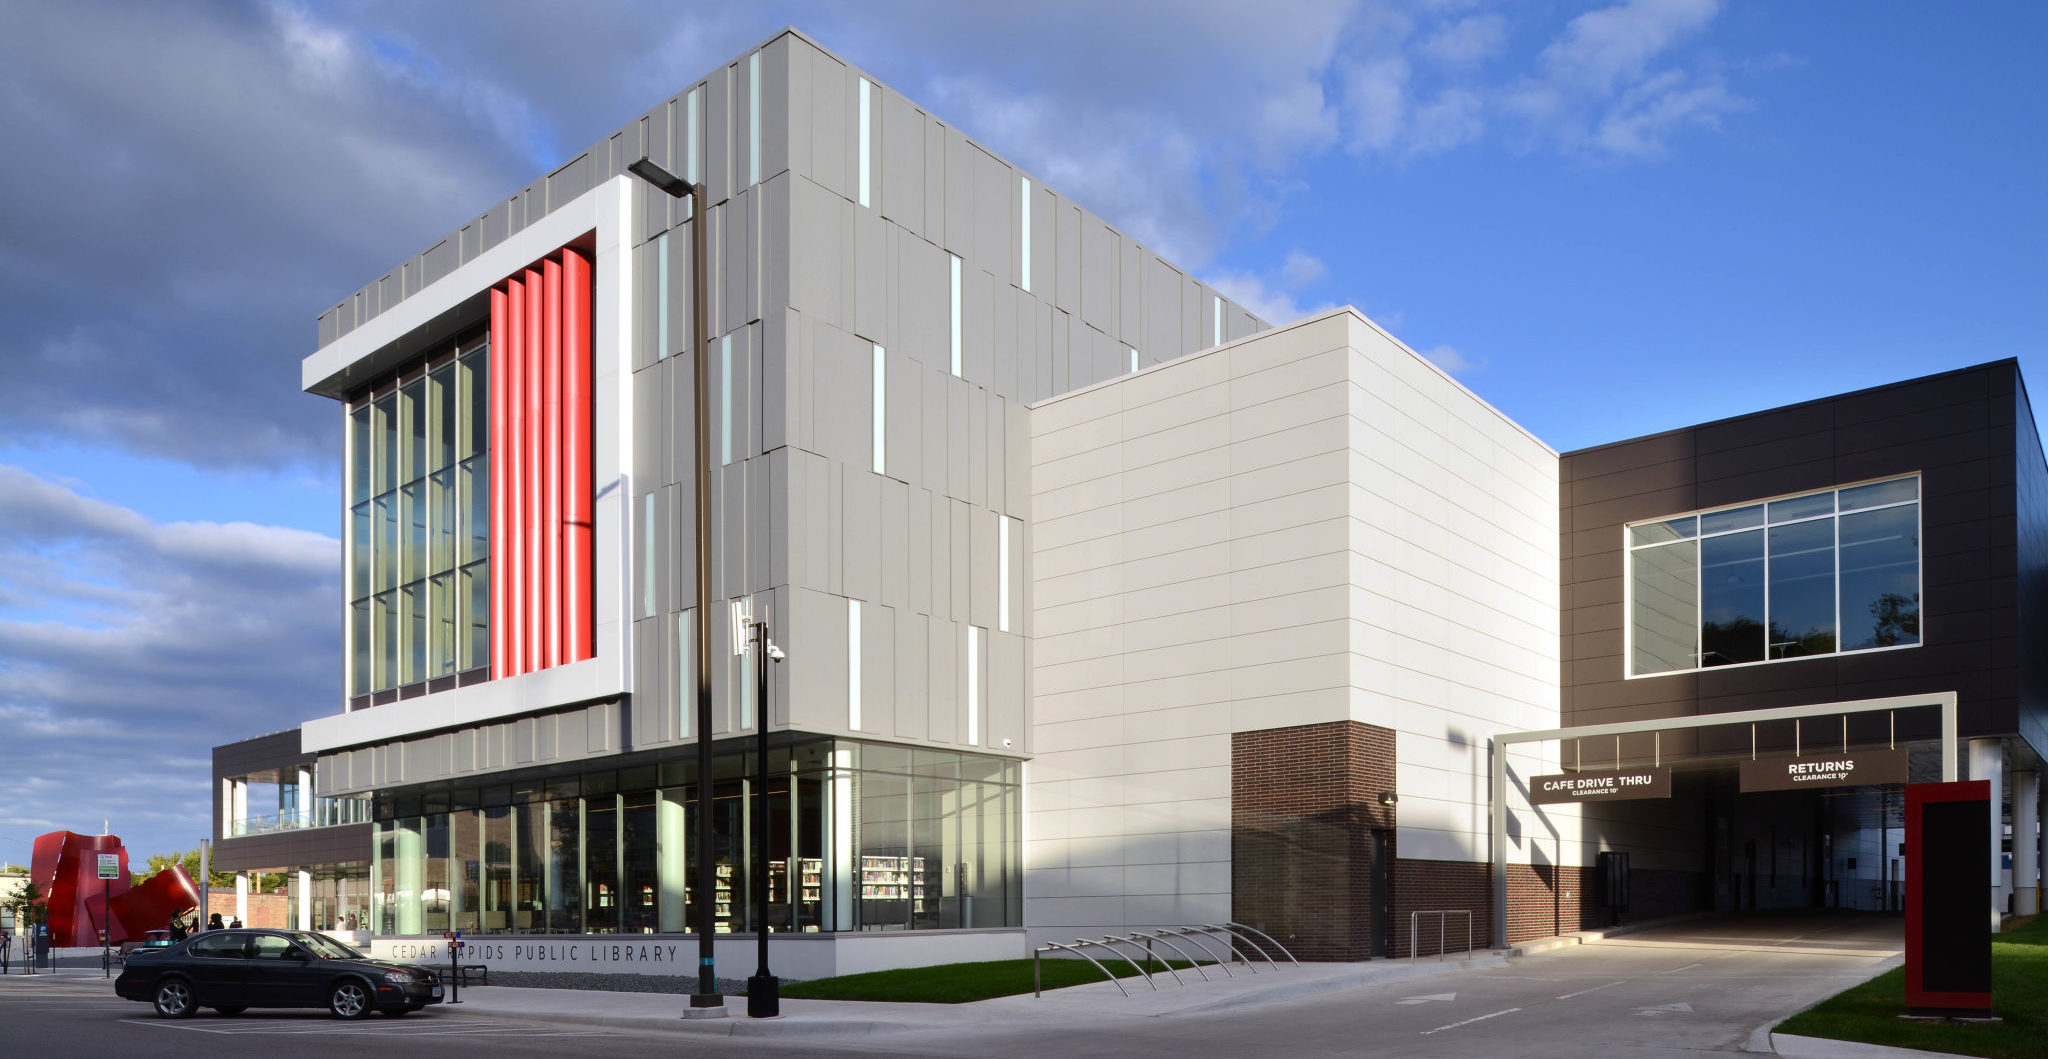 Aluminum composite material (ACM) panels with a zinc patina finish line the façade of the Cedar Rapids Public Library. Photos courtesy Alcoa Architectural Products